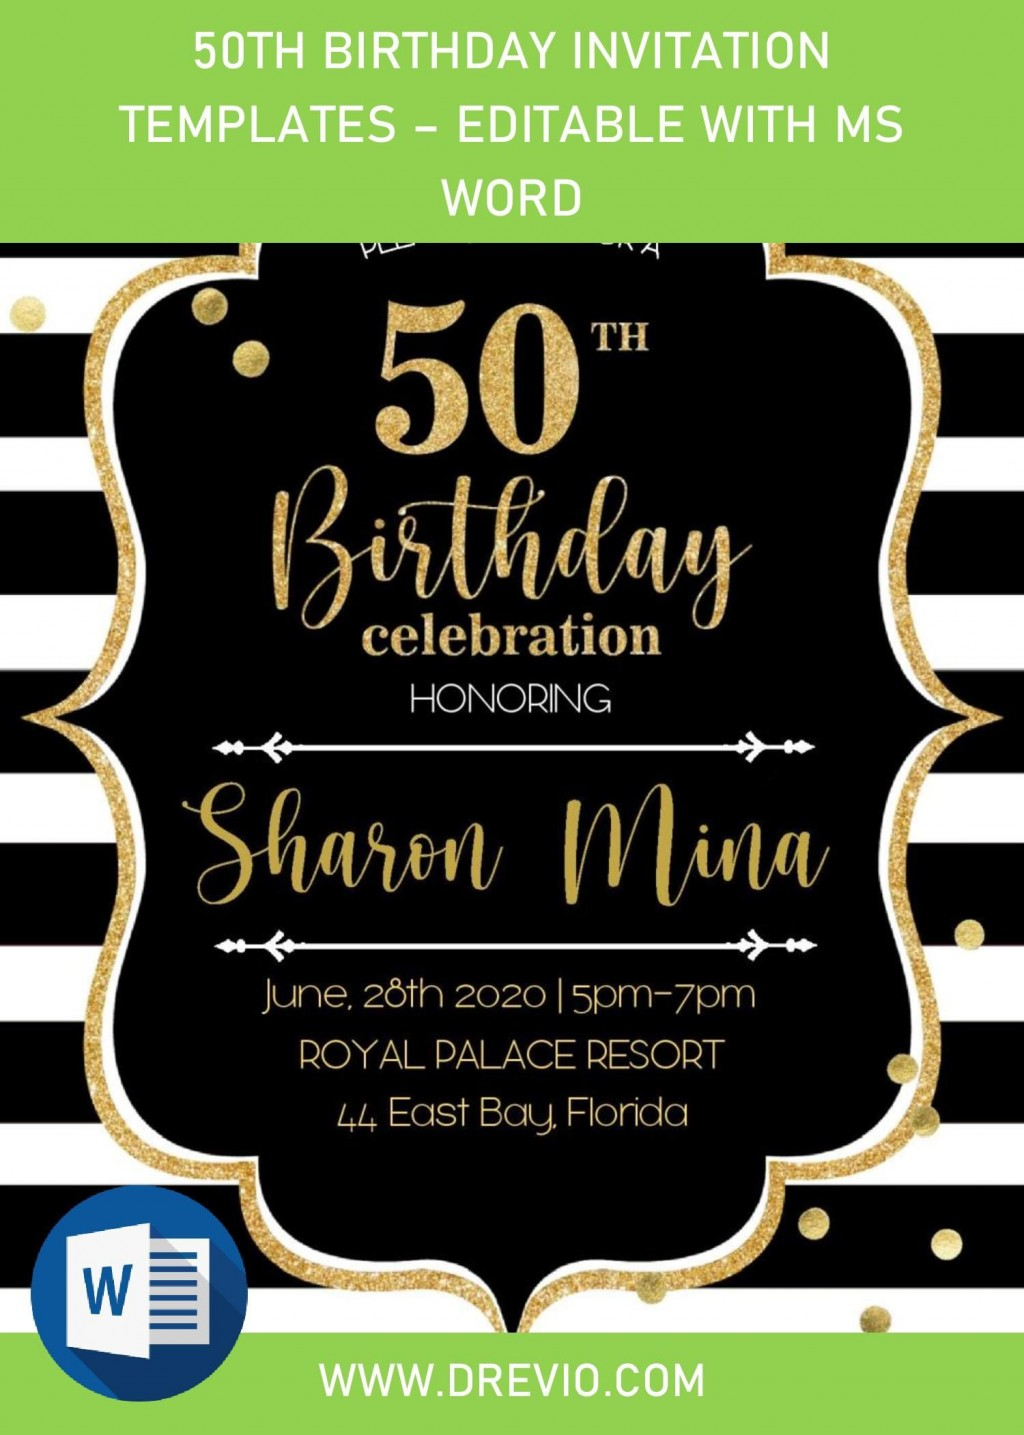 003 Incredible Birthday Invitation Template Word 2020 Highest Clarity Large